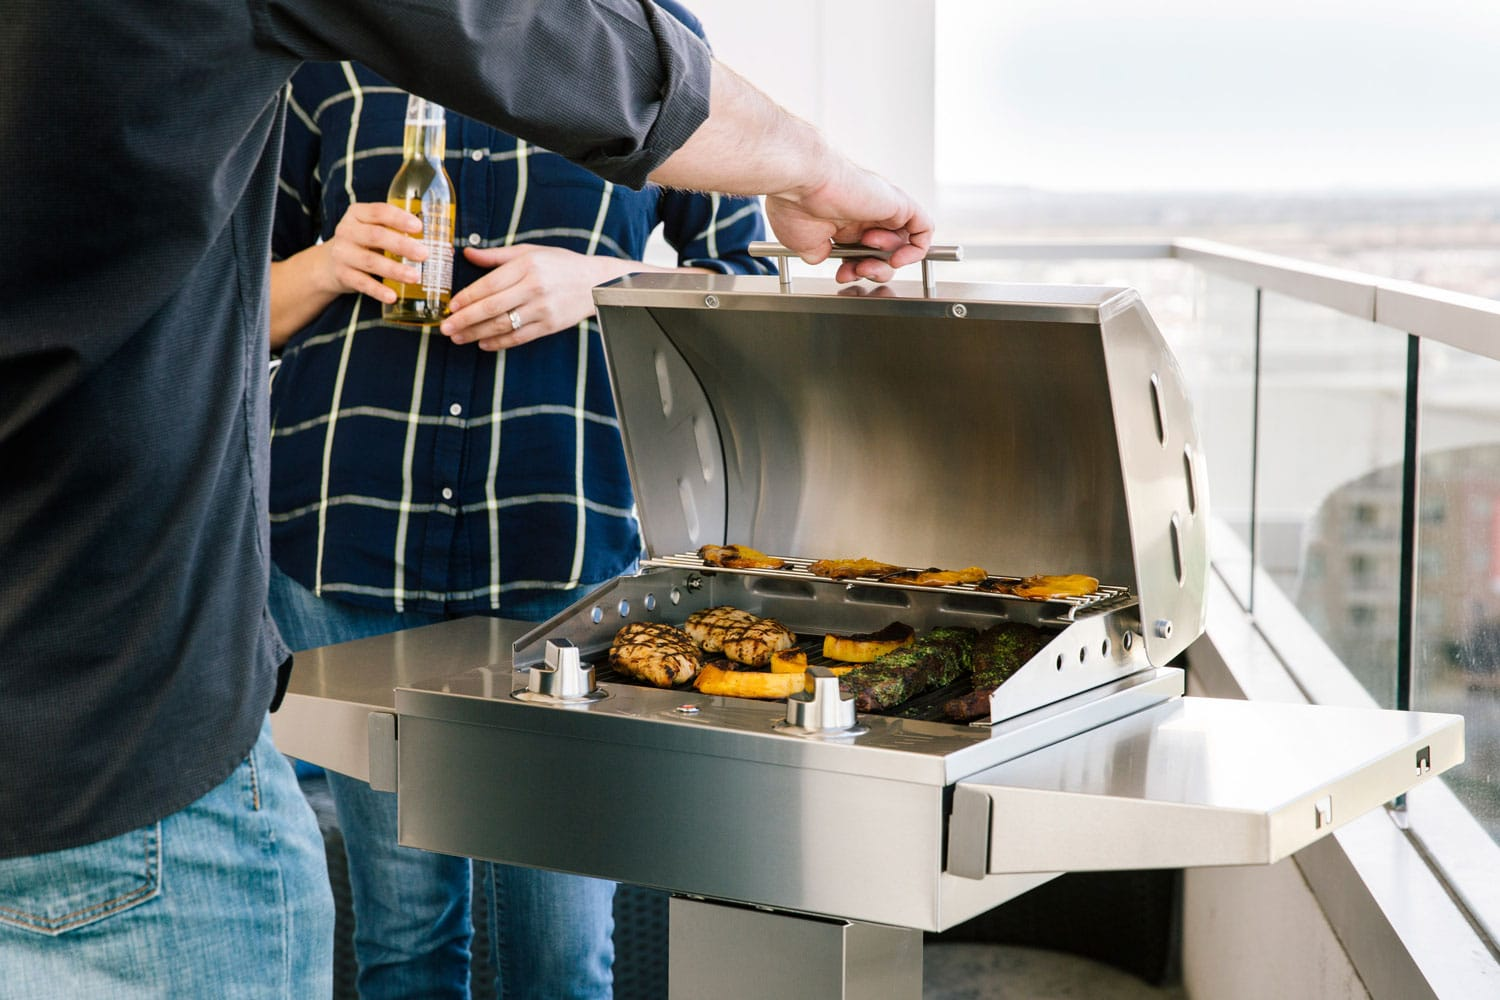 Electric Grill Market is growing at a 7.2% CAGR by 2027 according to a new research report